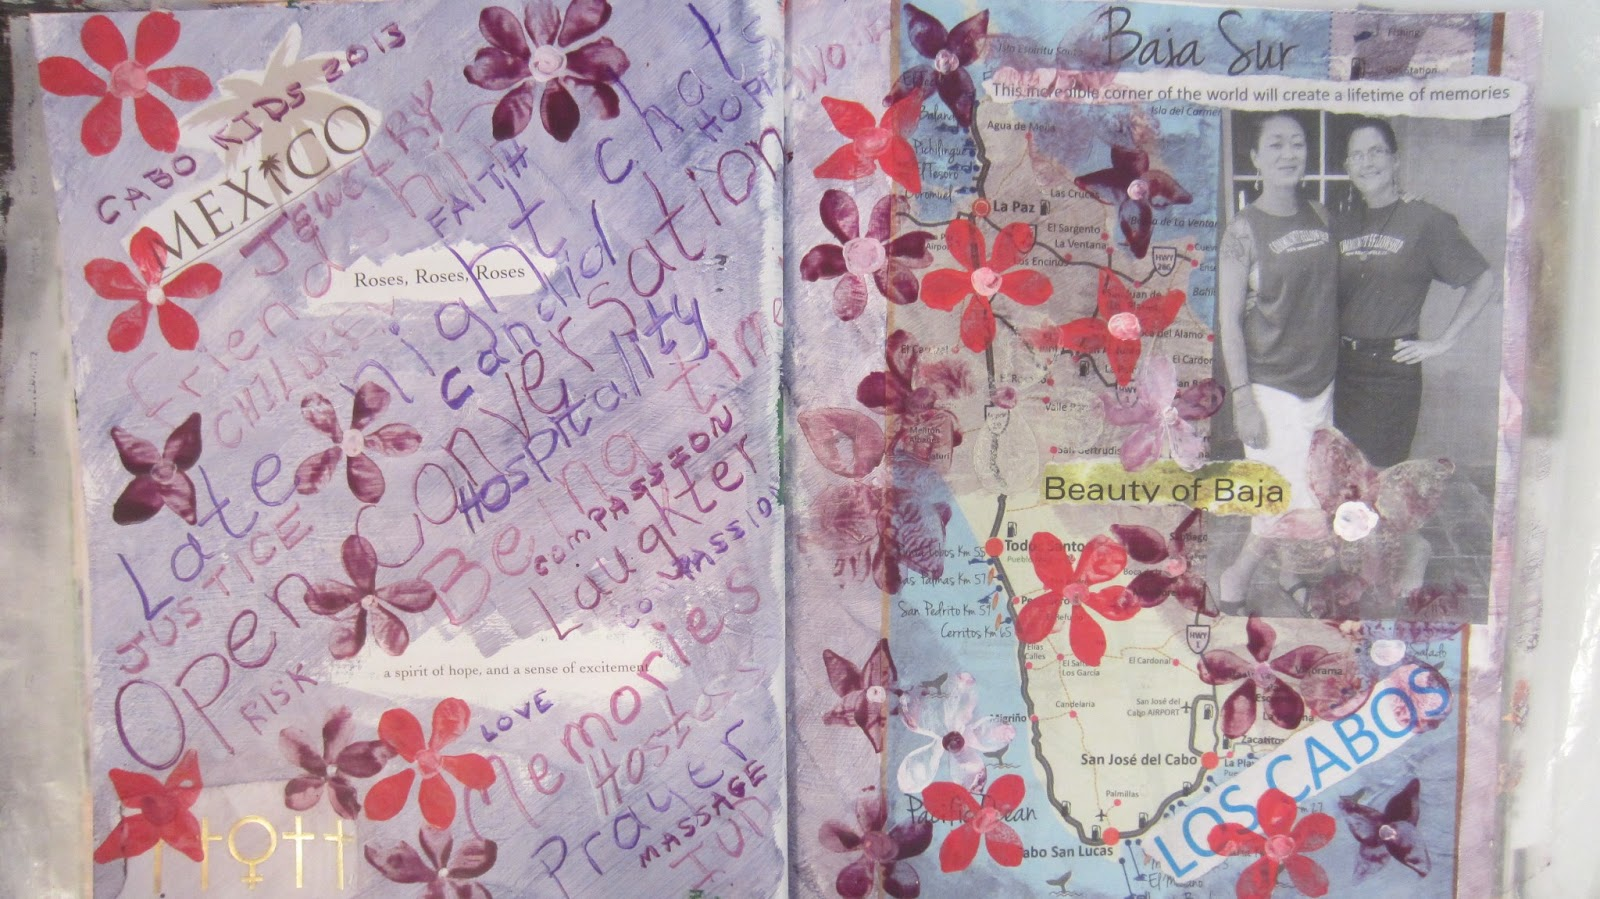 i also included scrapbook items from the trip a map a few phrases torn from tourist publications and a snapshot of us together